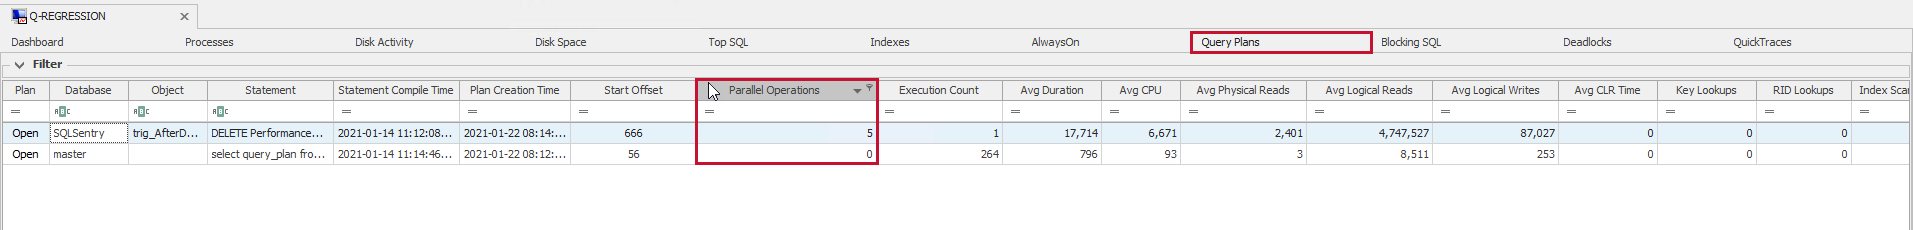 SentryOne Query Plans sort by Parrallel Operations column